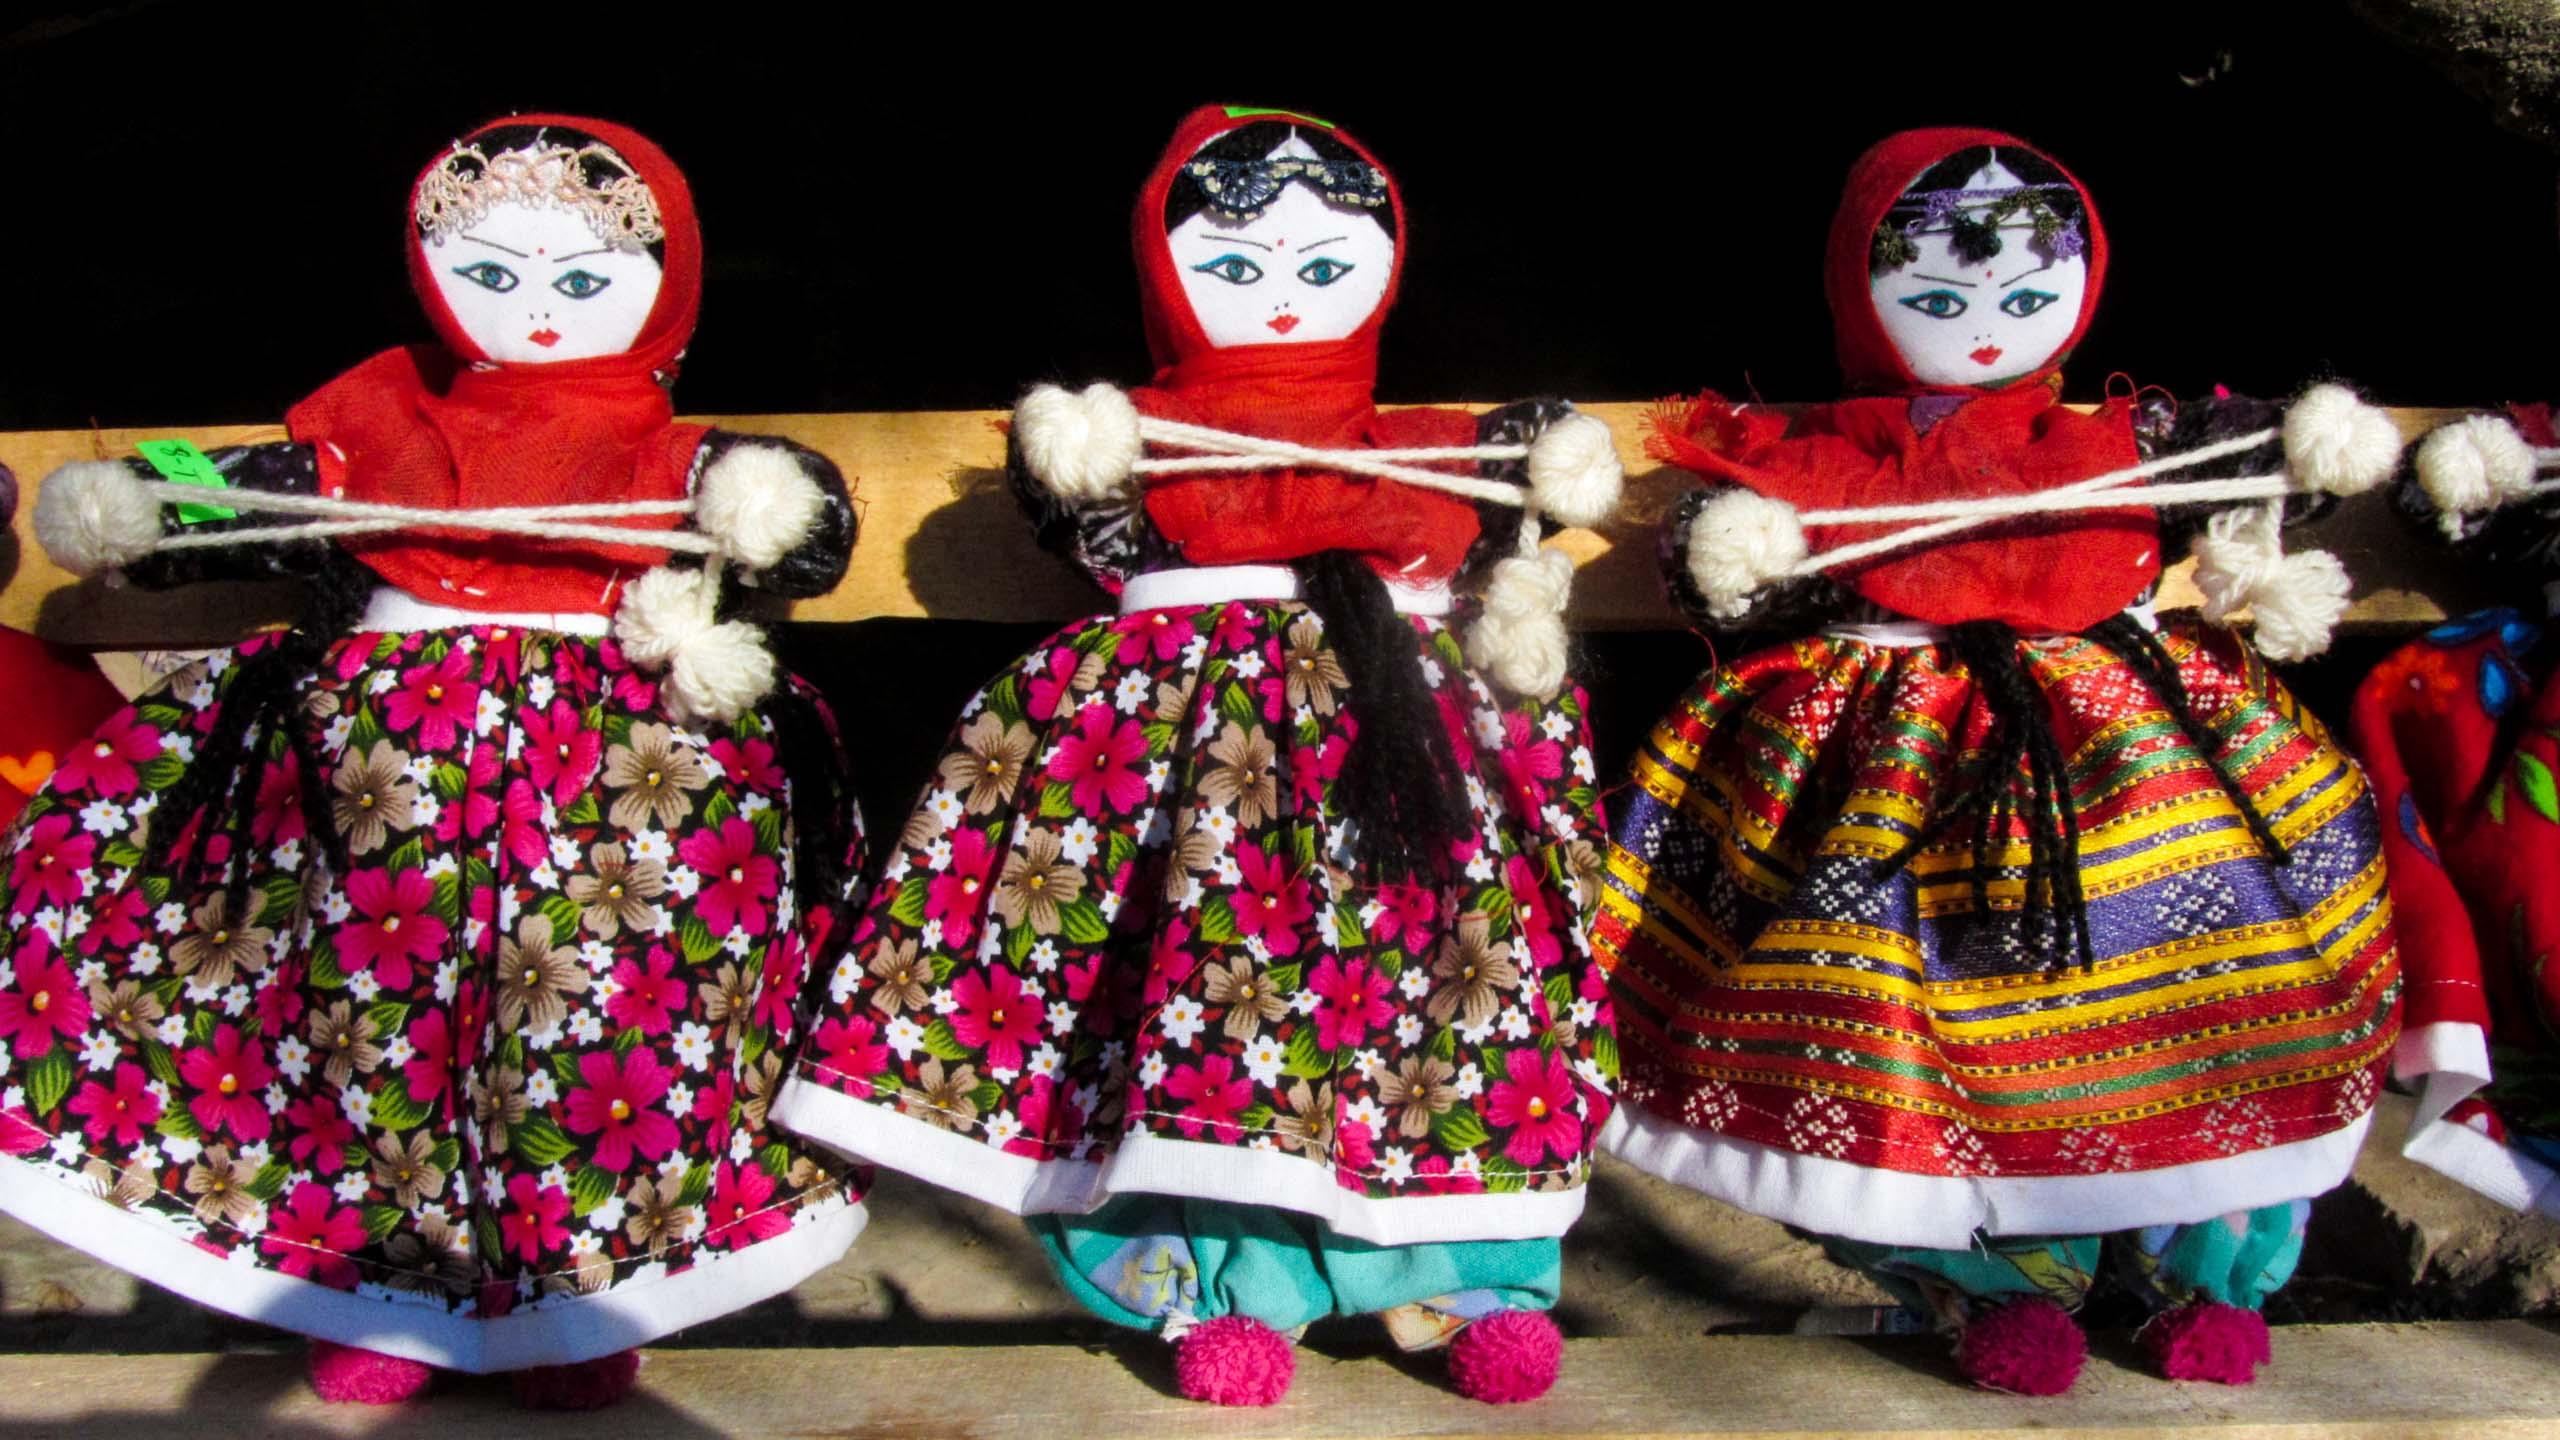 Fabric dolls in a row in Turkey market